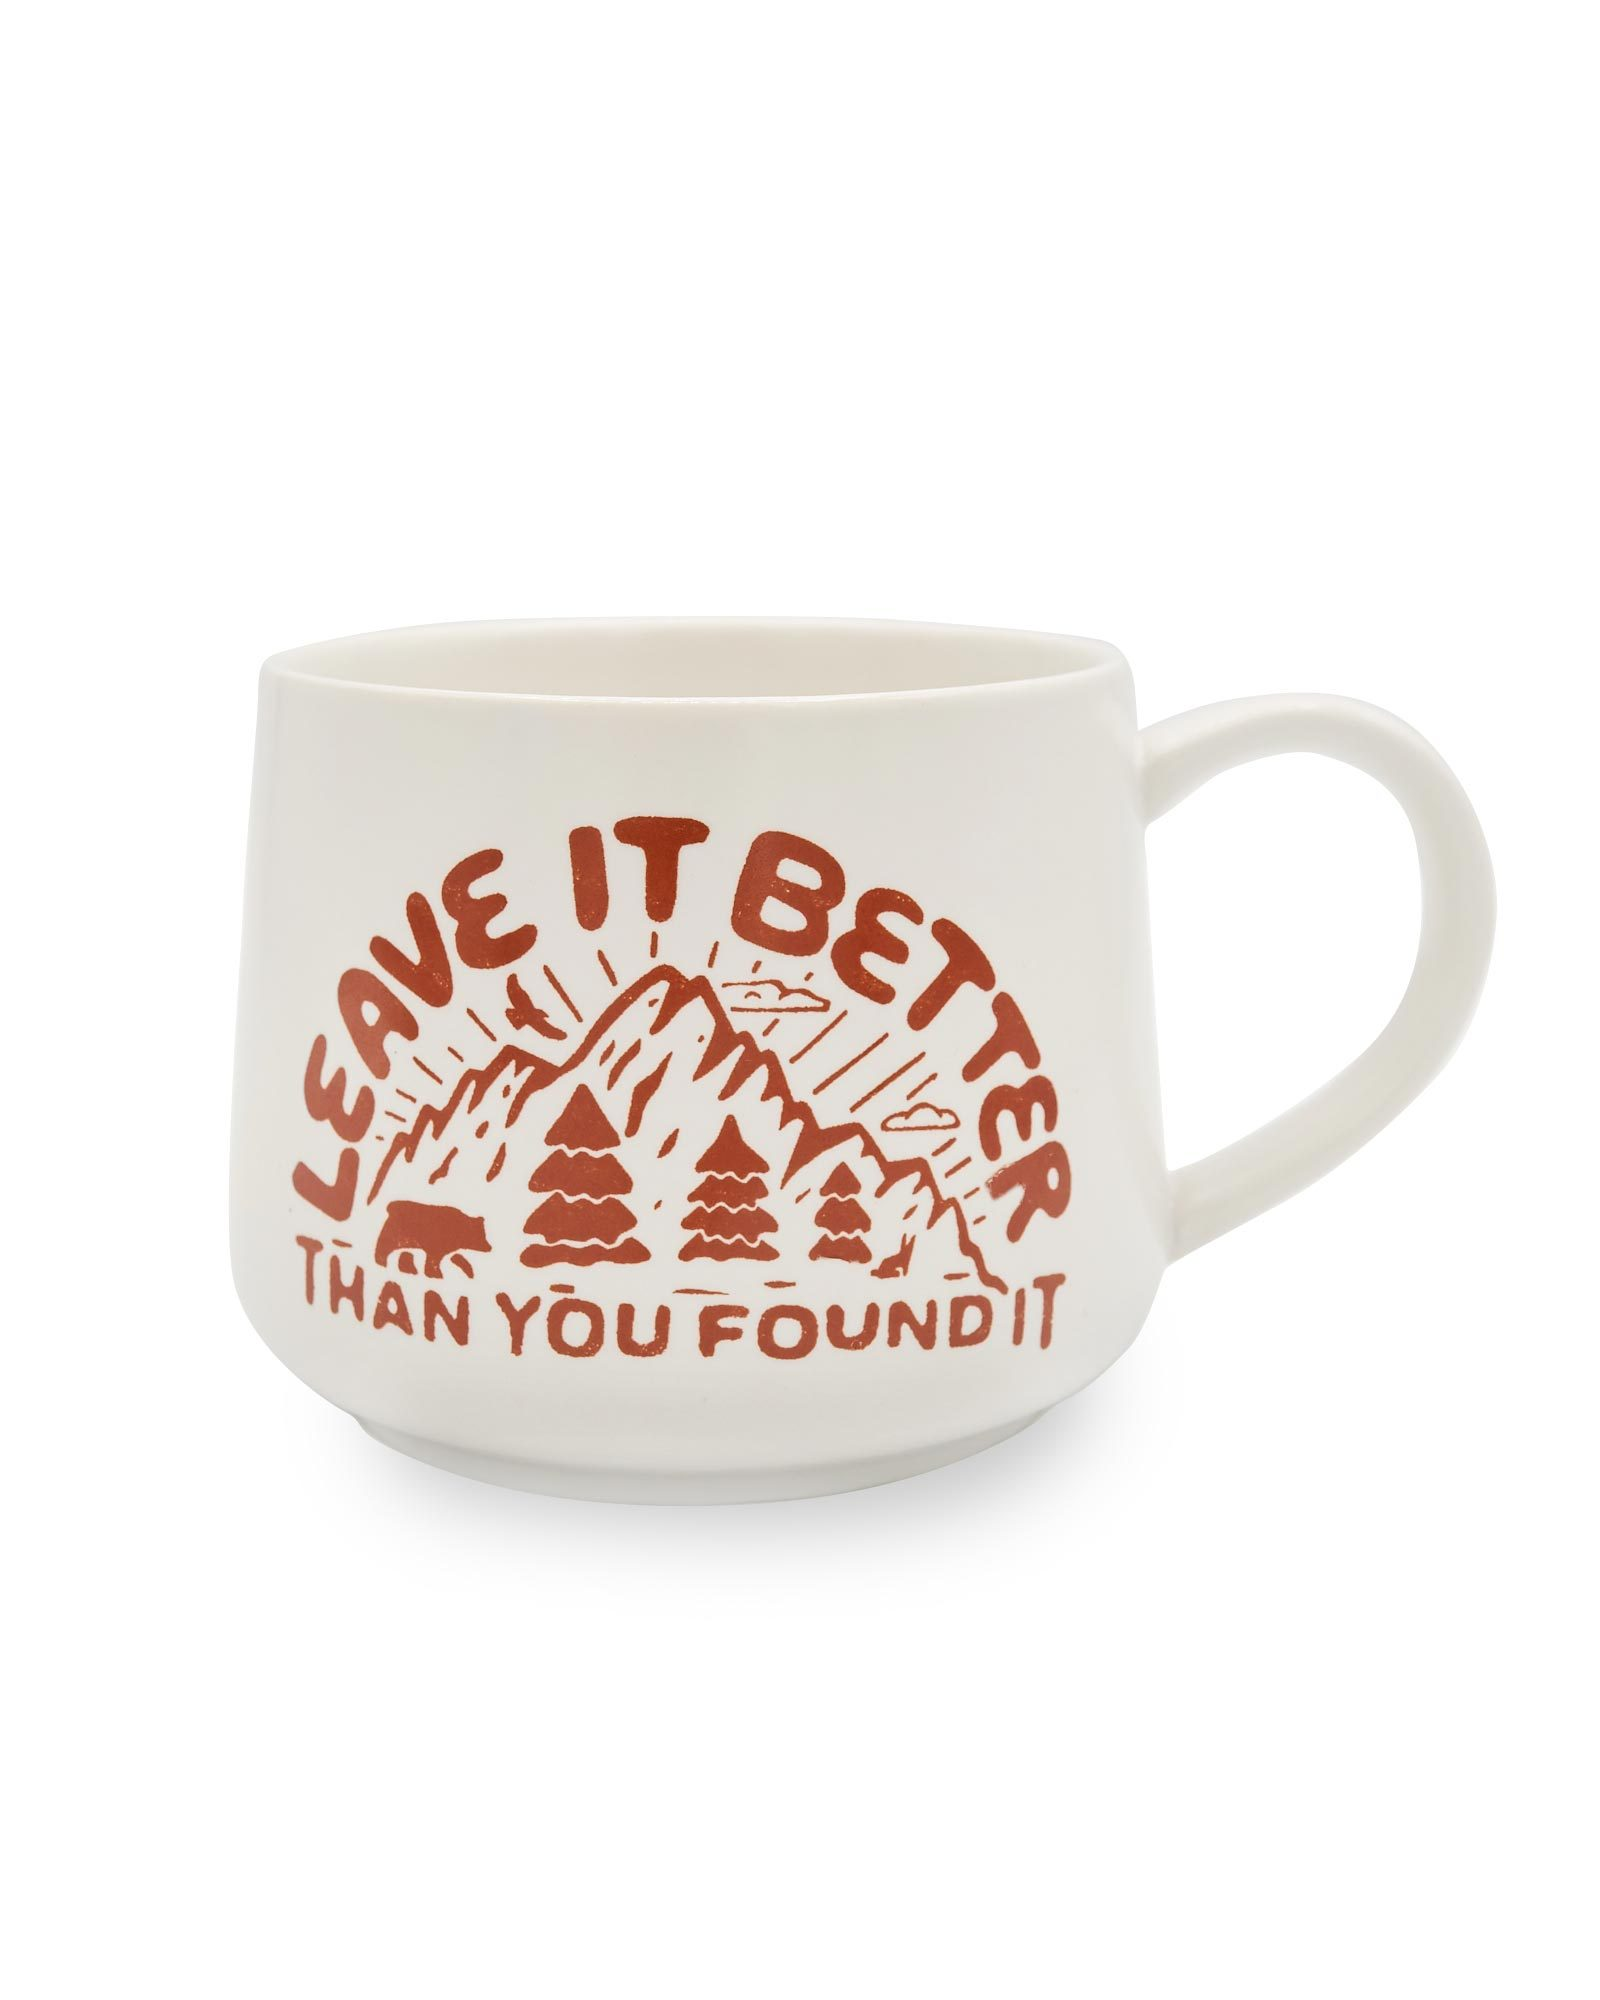 Holiday Gift Guide for National Park Lovers - LNT Mug